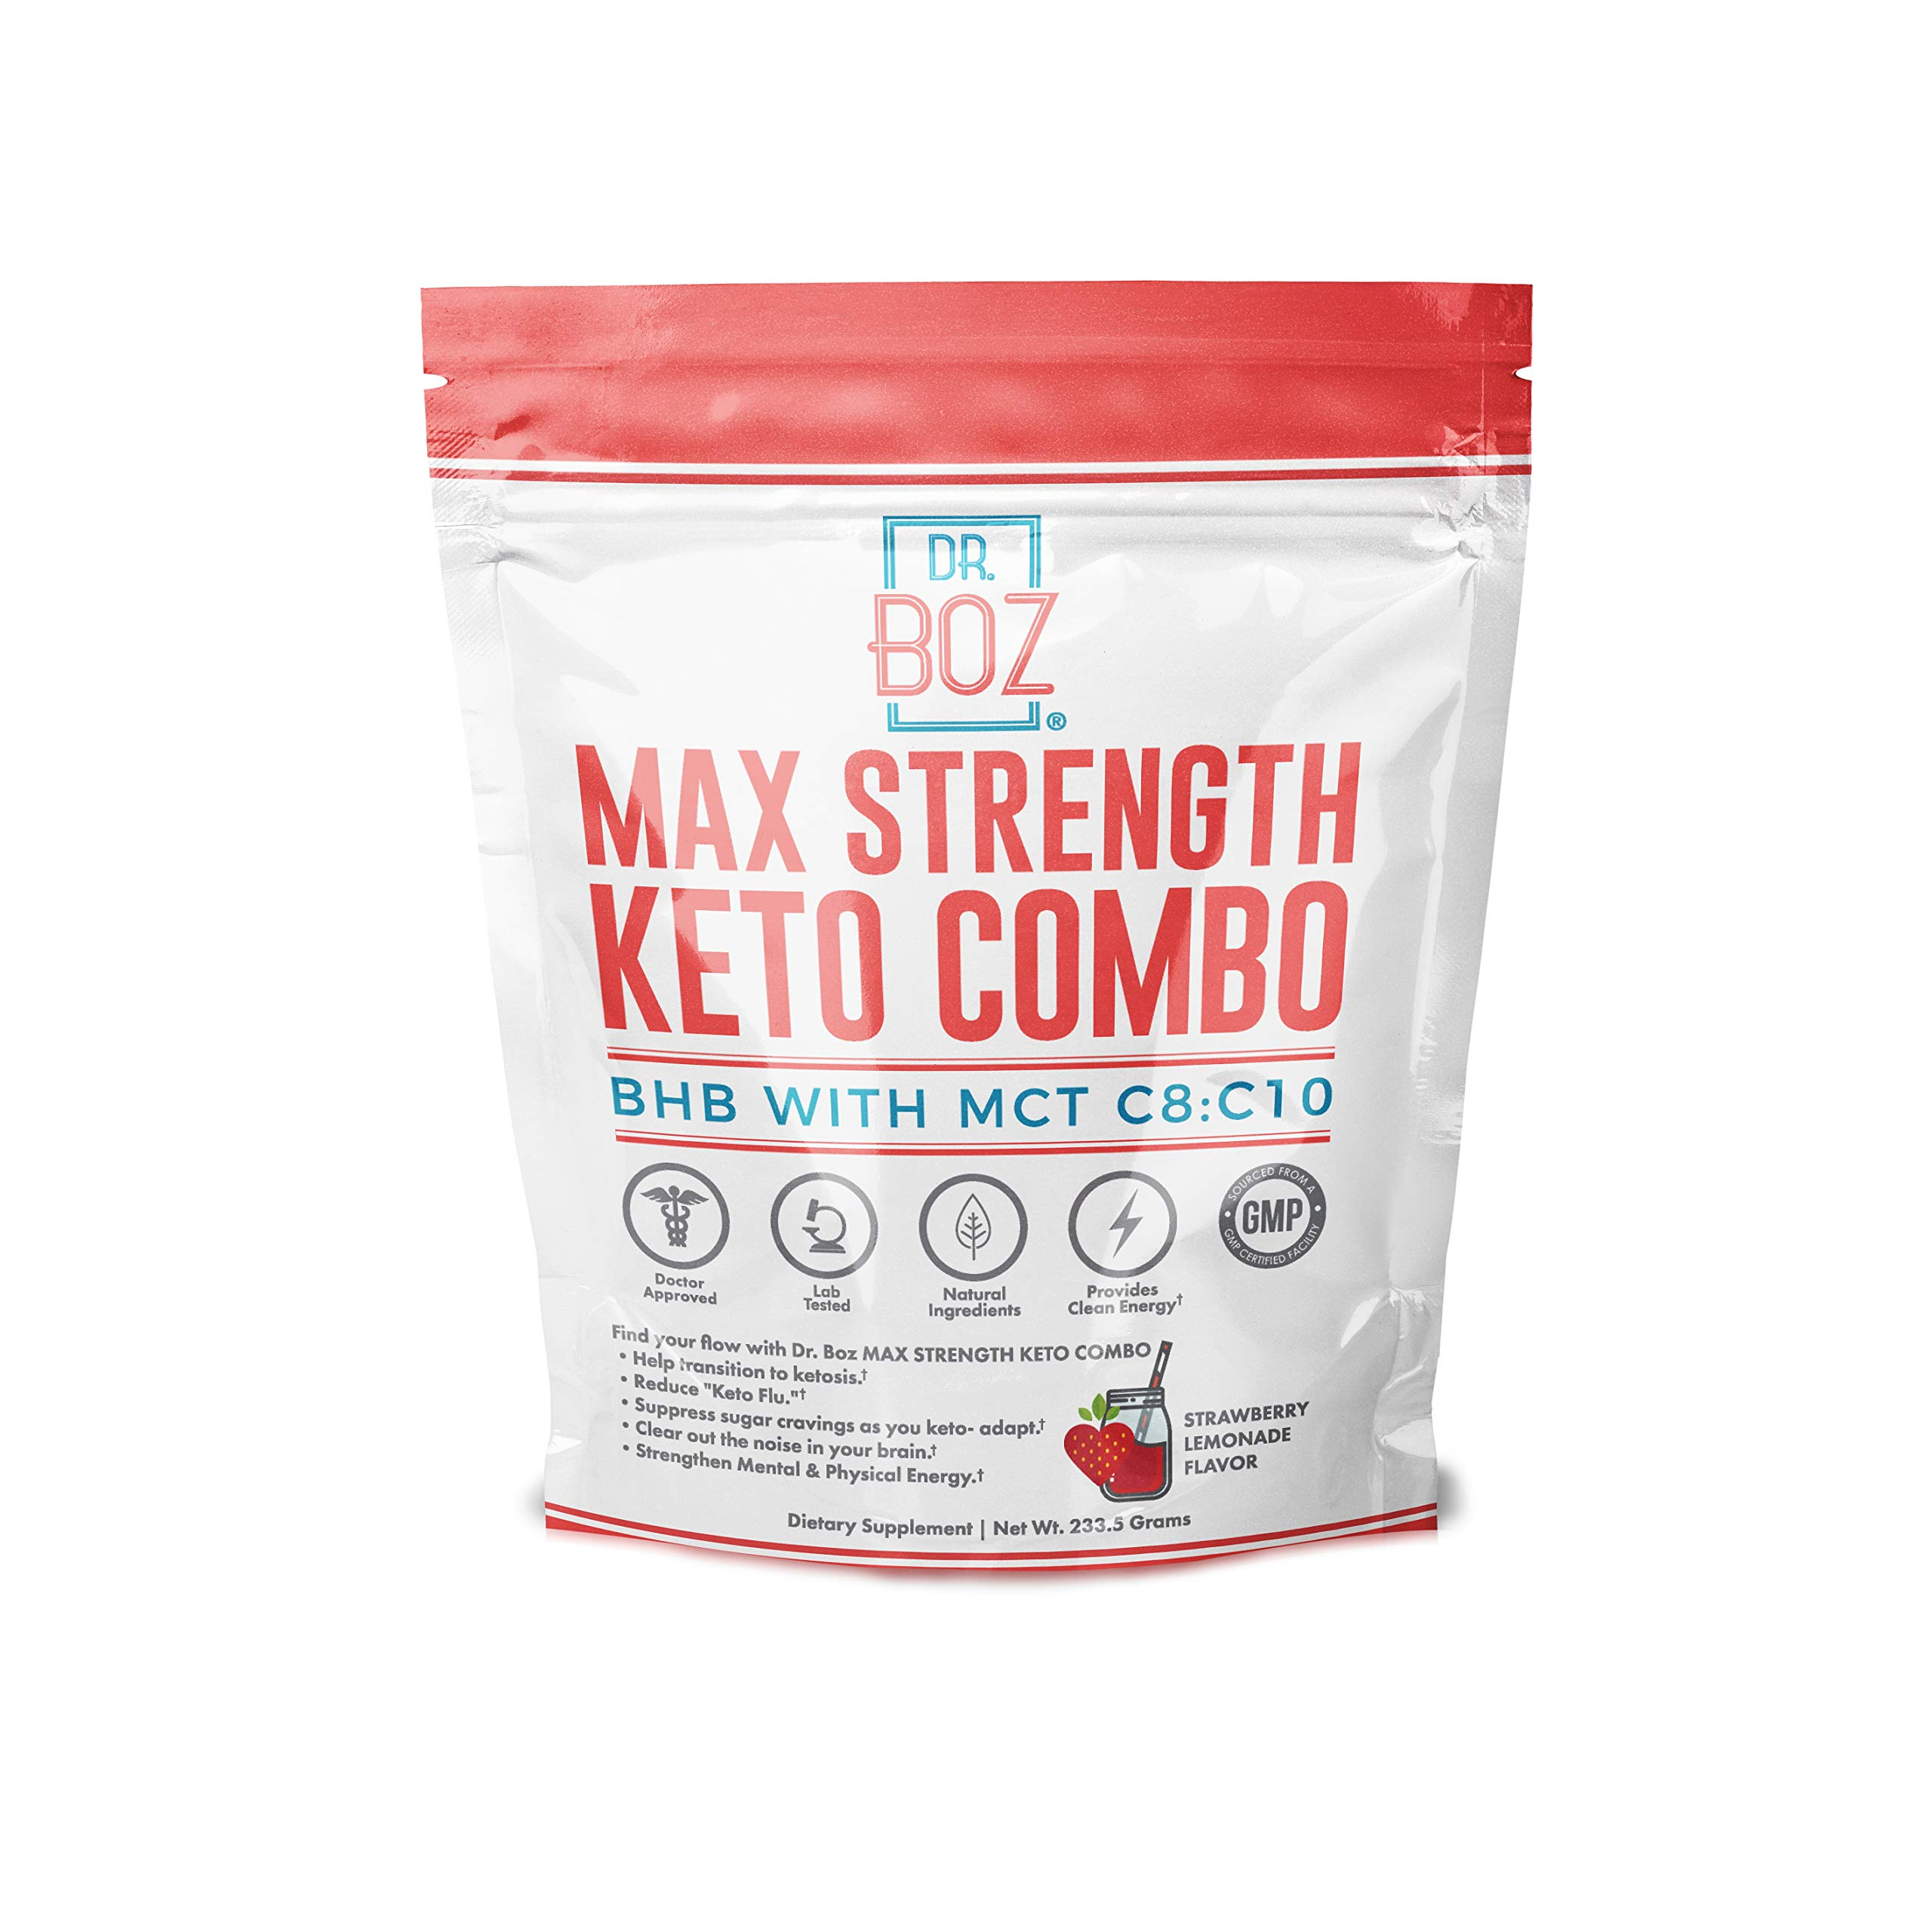 Dr. Boz MCT Oil Powder with BHB [Coconut MCT Oil Powder+ Keto BHB Powder] - Keto Supplement |Keto Shake - MAX Strength Keto BHB & MCT C8:C10 [Strawberry Lemonade 233g Bag] by Dr. Boz